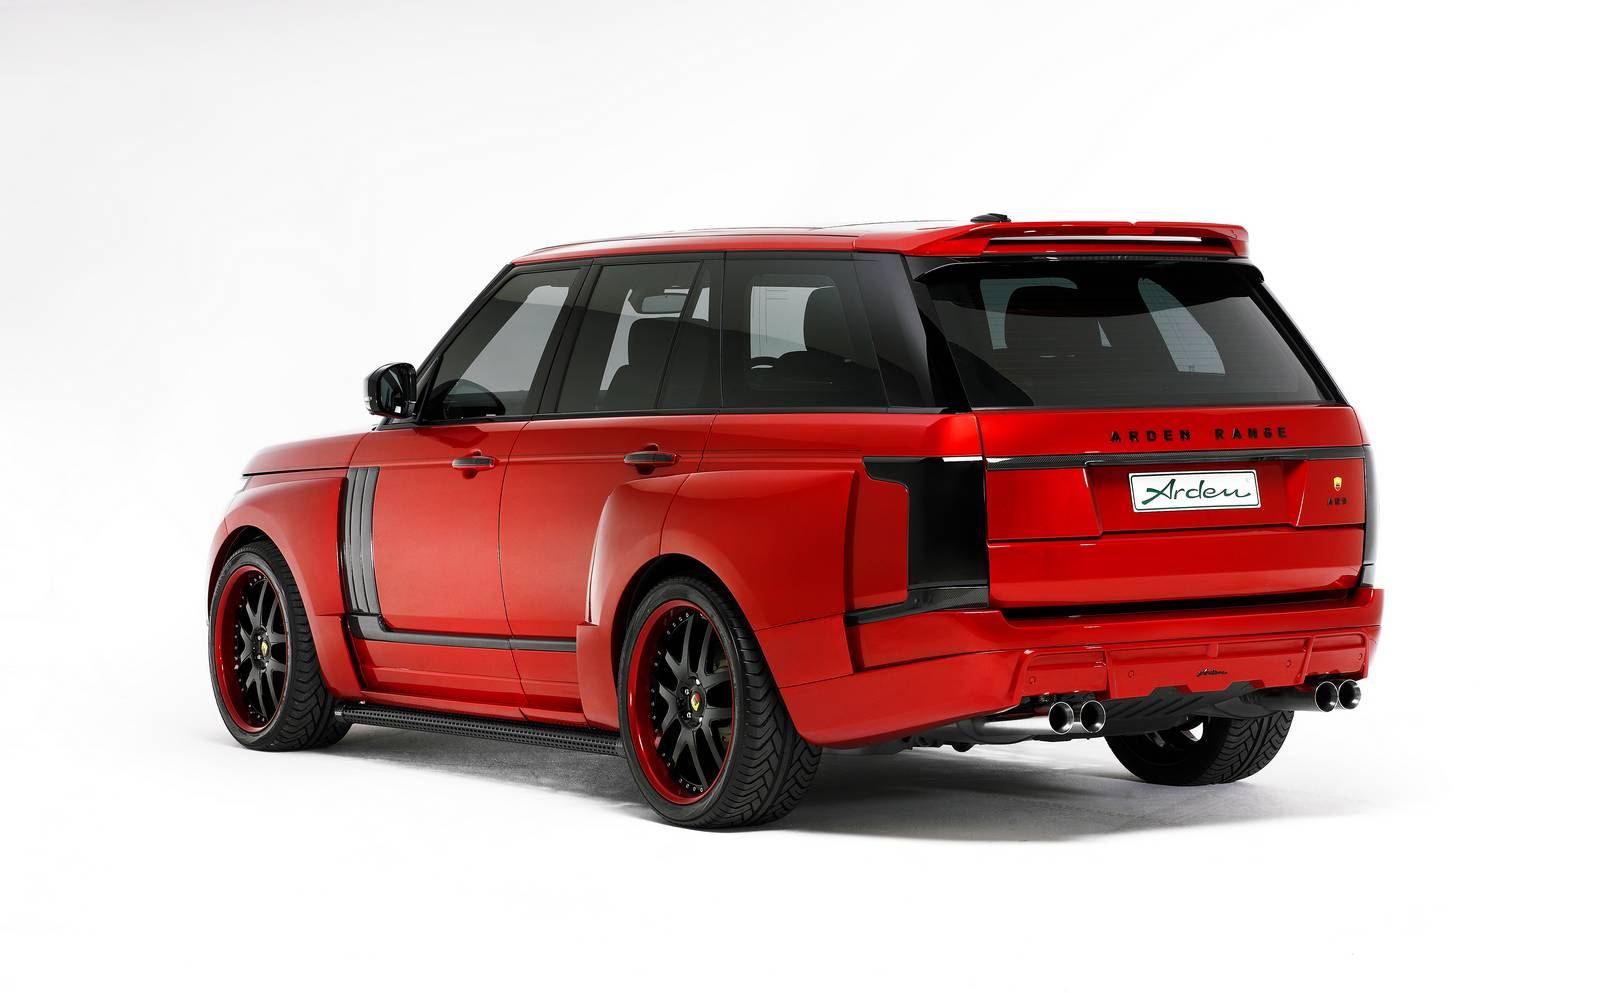 2016 arden range rover ar 9 spirit special edition dark cars wallpapers. Black Bedroom Furniture Sets. Home Design Ideas